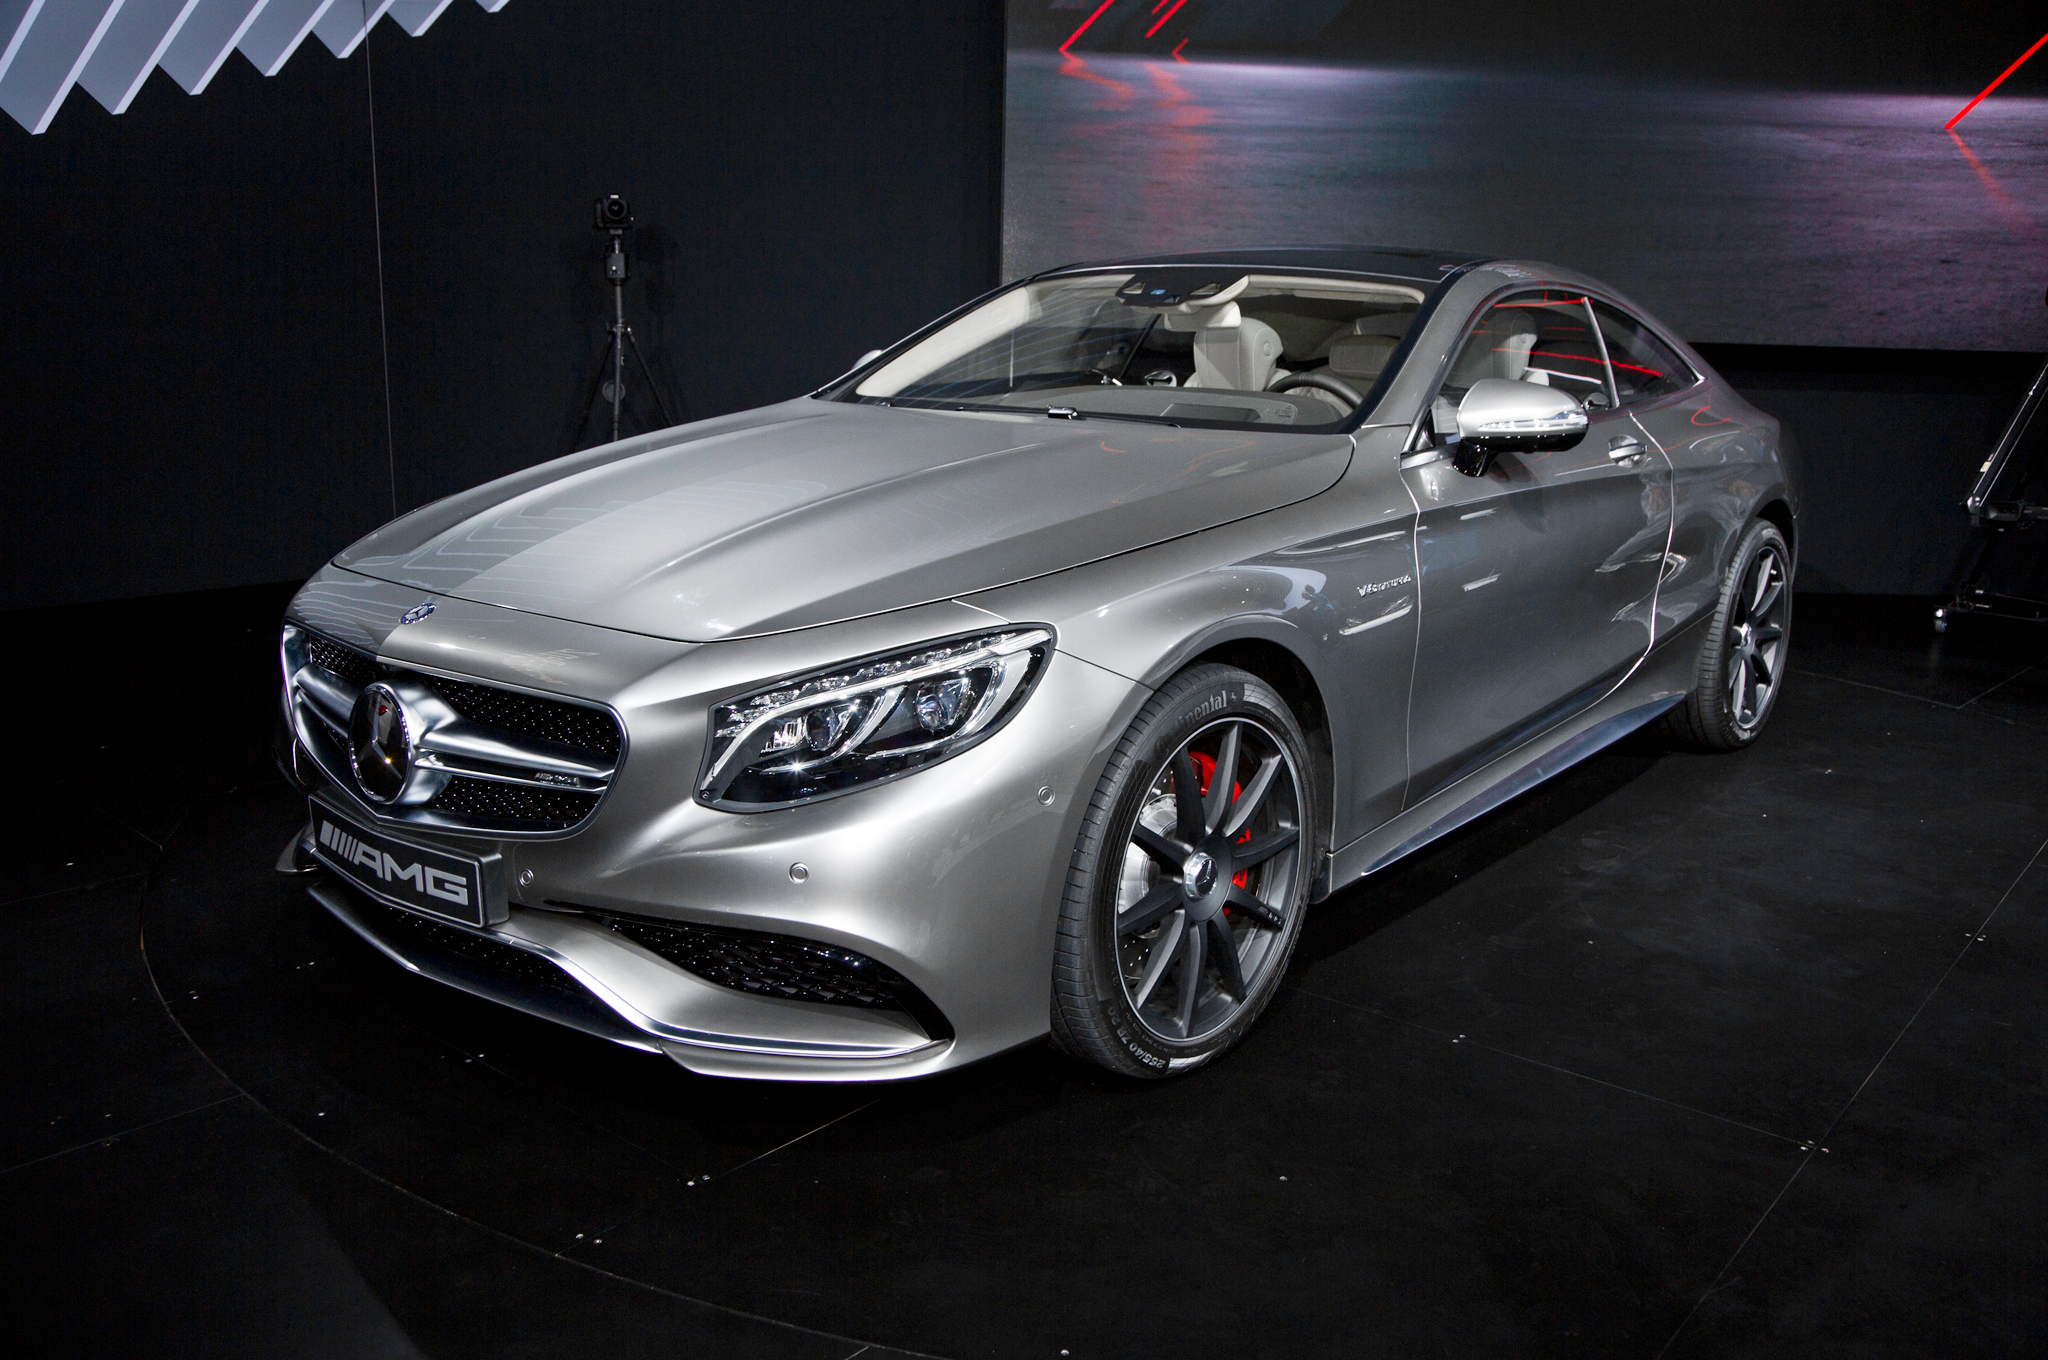 2015 Mercedes Benz S63 AMG Coupe 4Matic Revealed Ahead Of New York